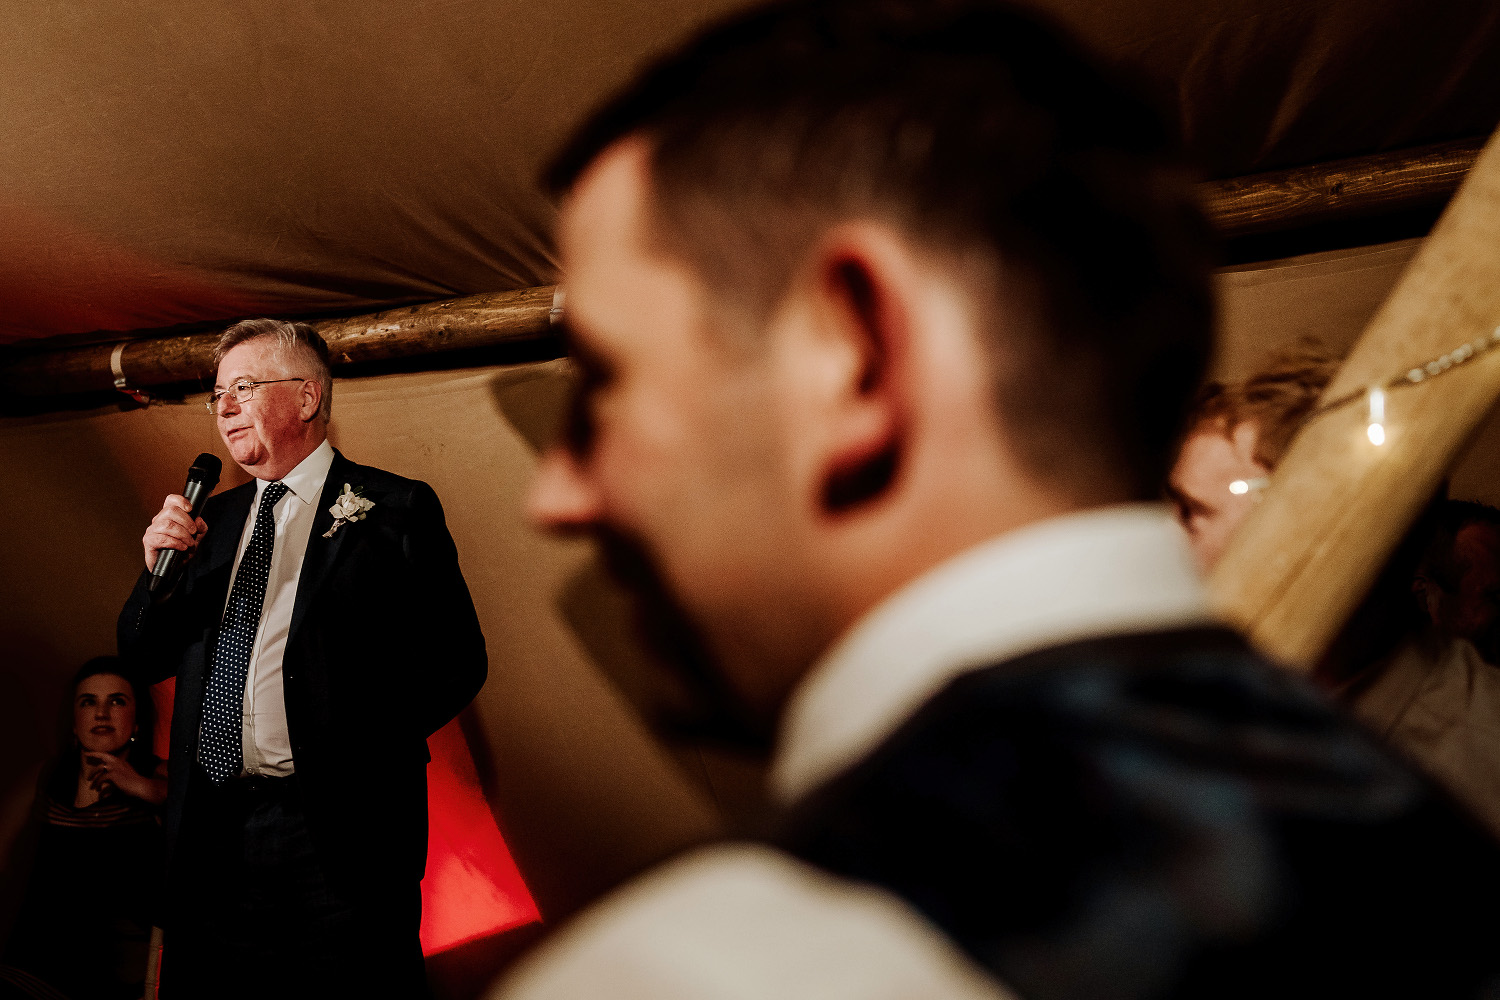 father of the bride with microphone watched by groom